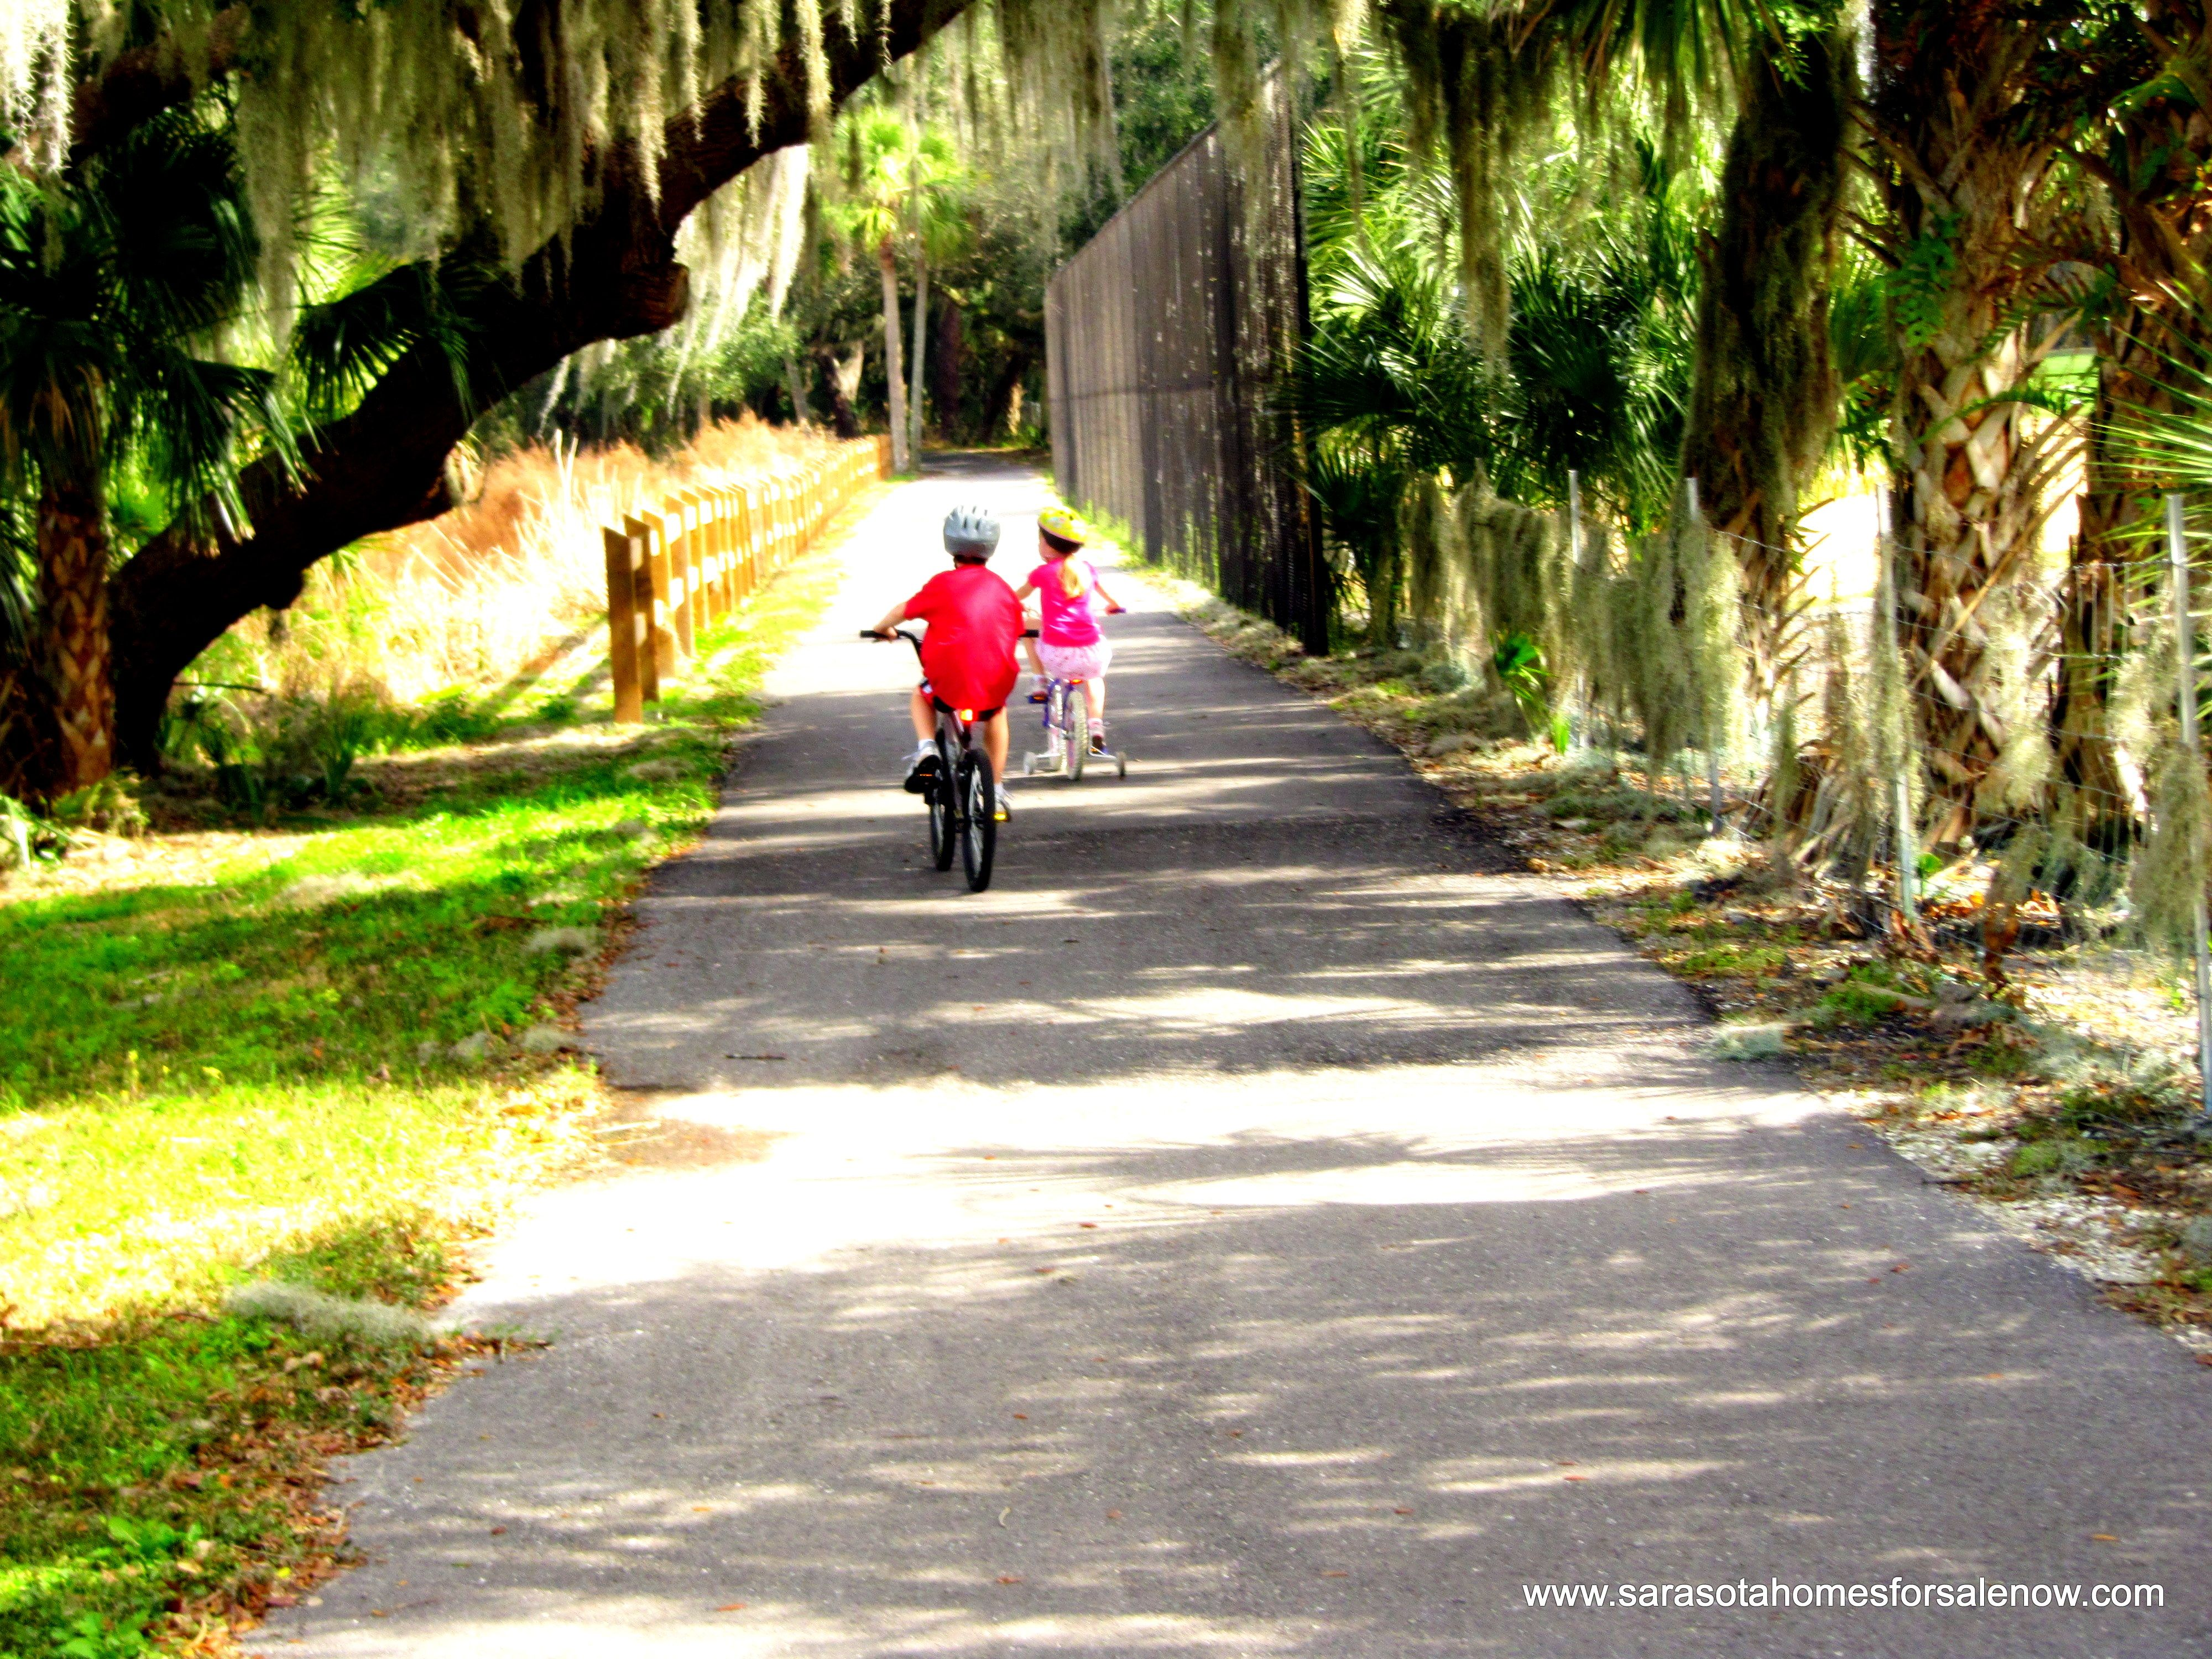 Sarasota offers great parks for family recreation